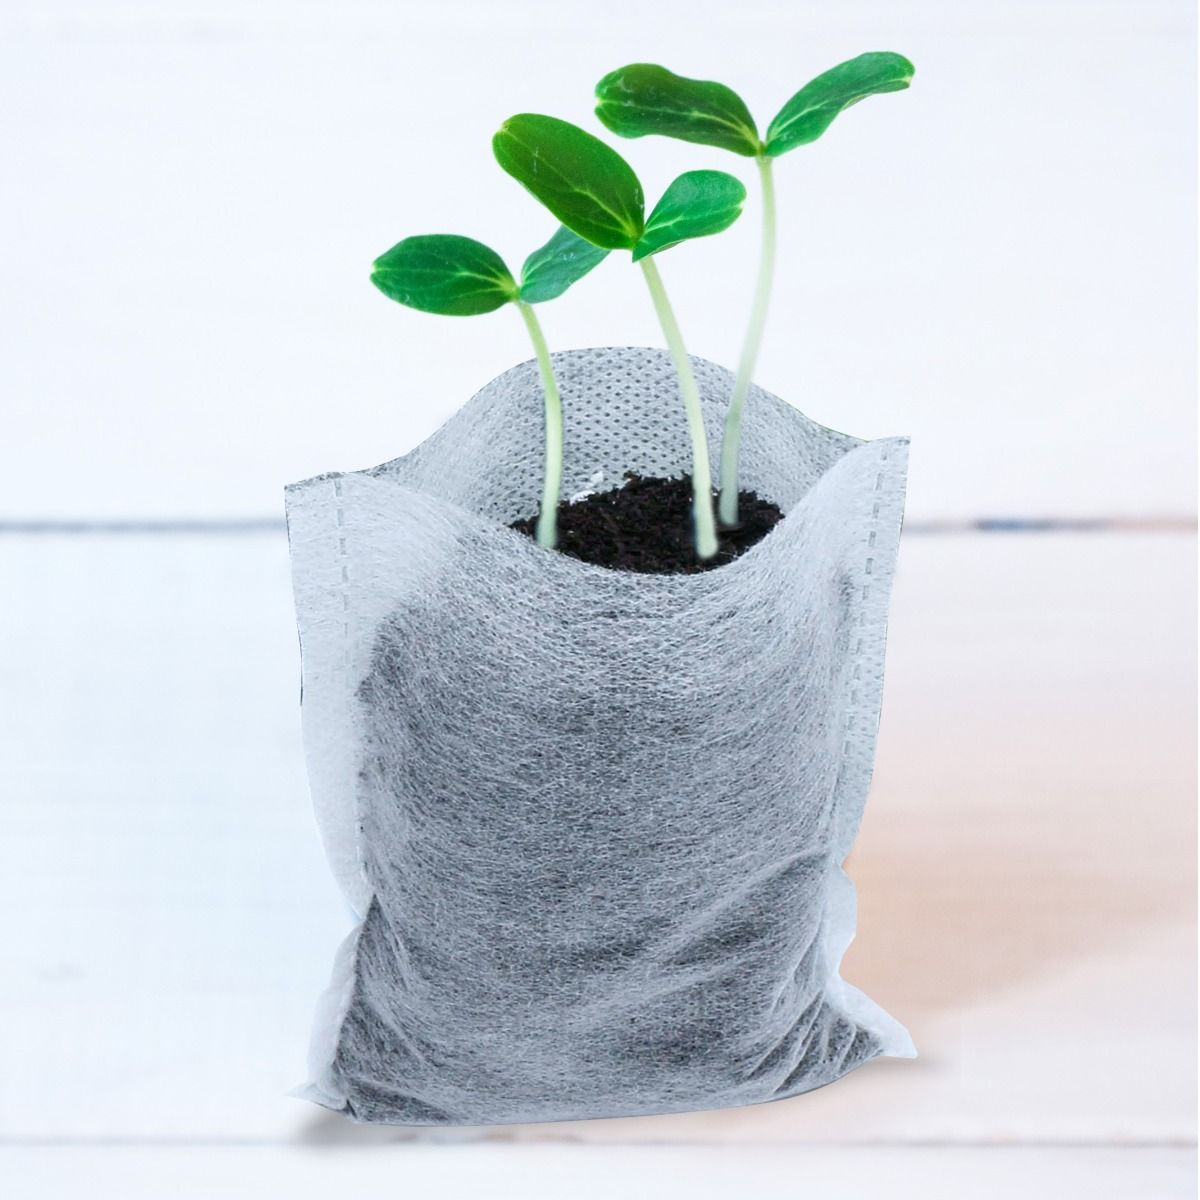 Details about  /Khaki Plant Grow Bags Garden Thickened Non-Woven Aeration Fabric Pots Container